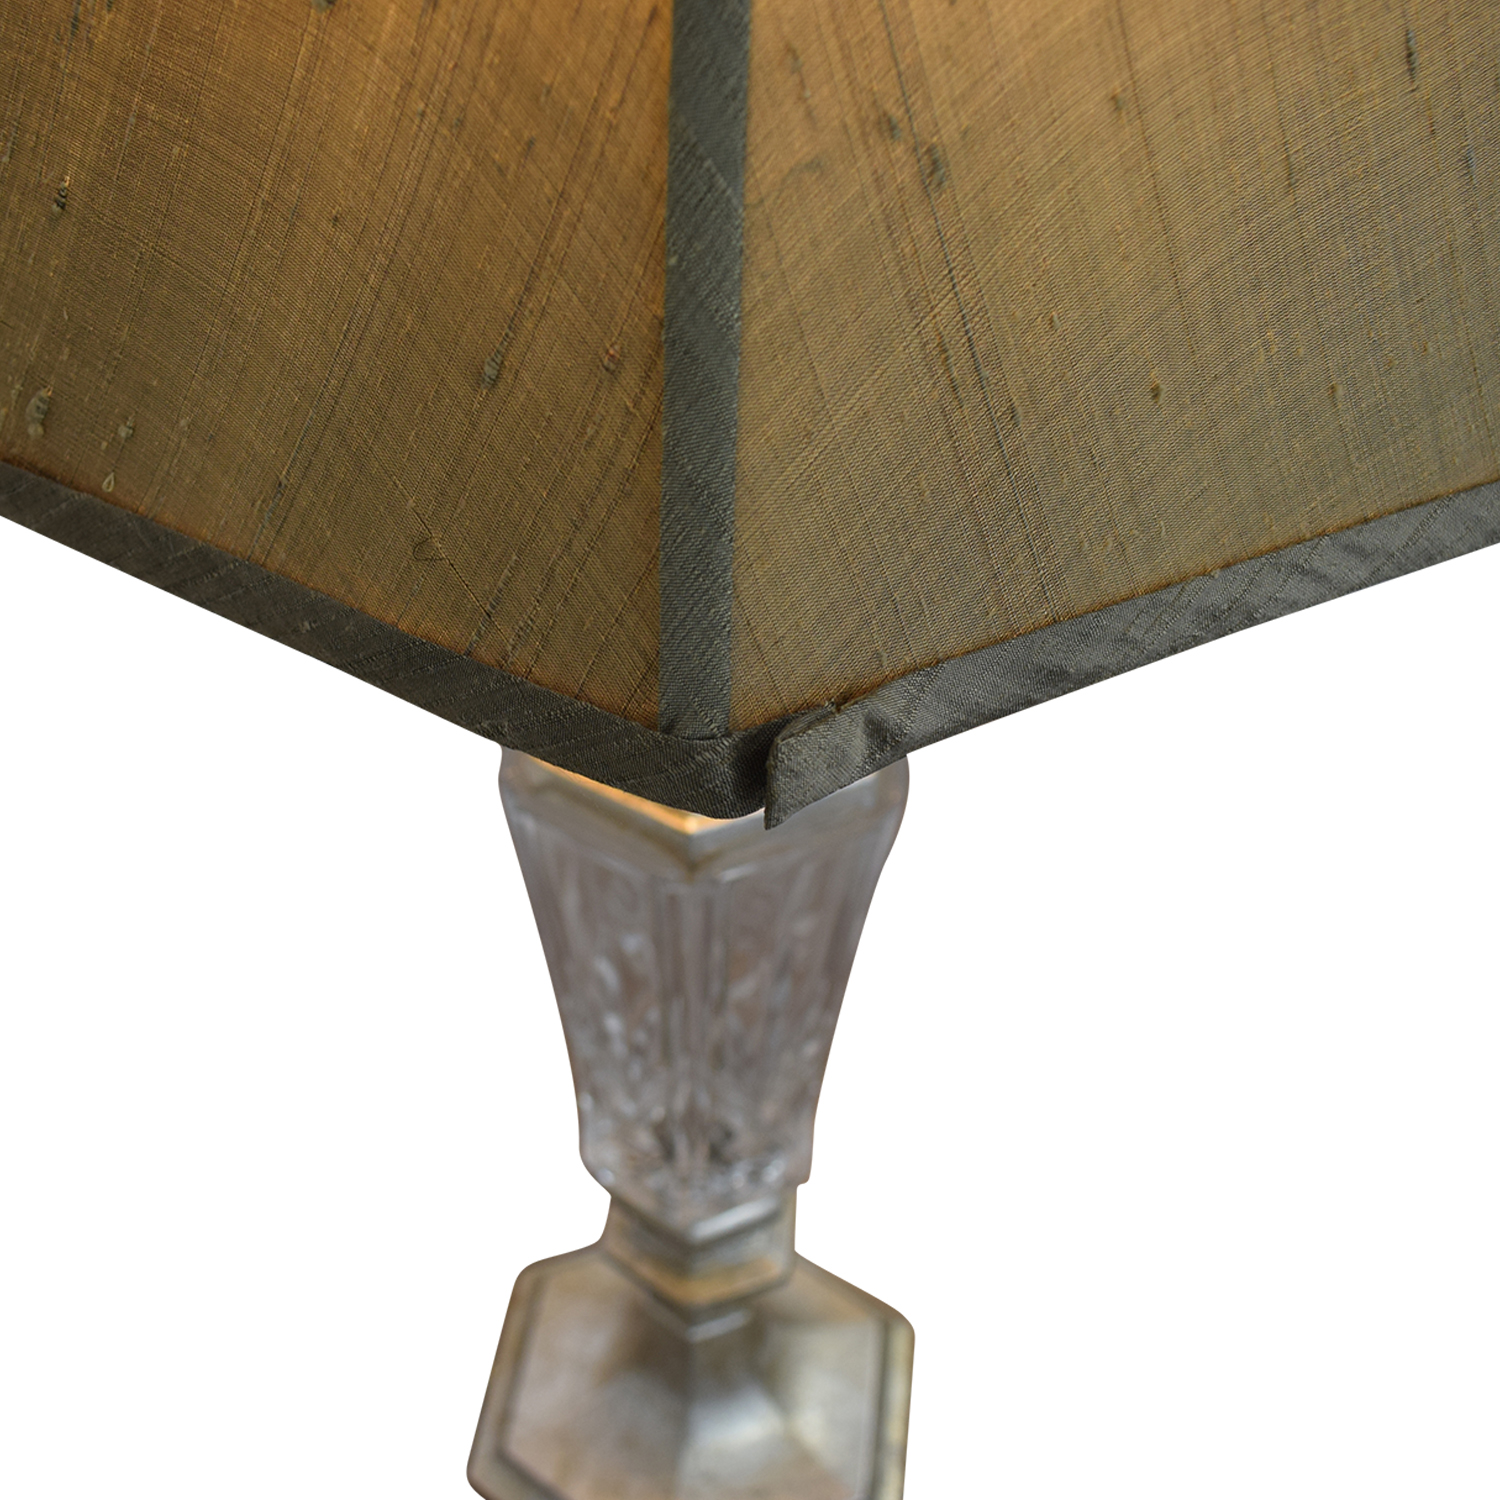 Distressed and Glass Accent Table Lamps used